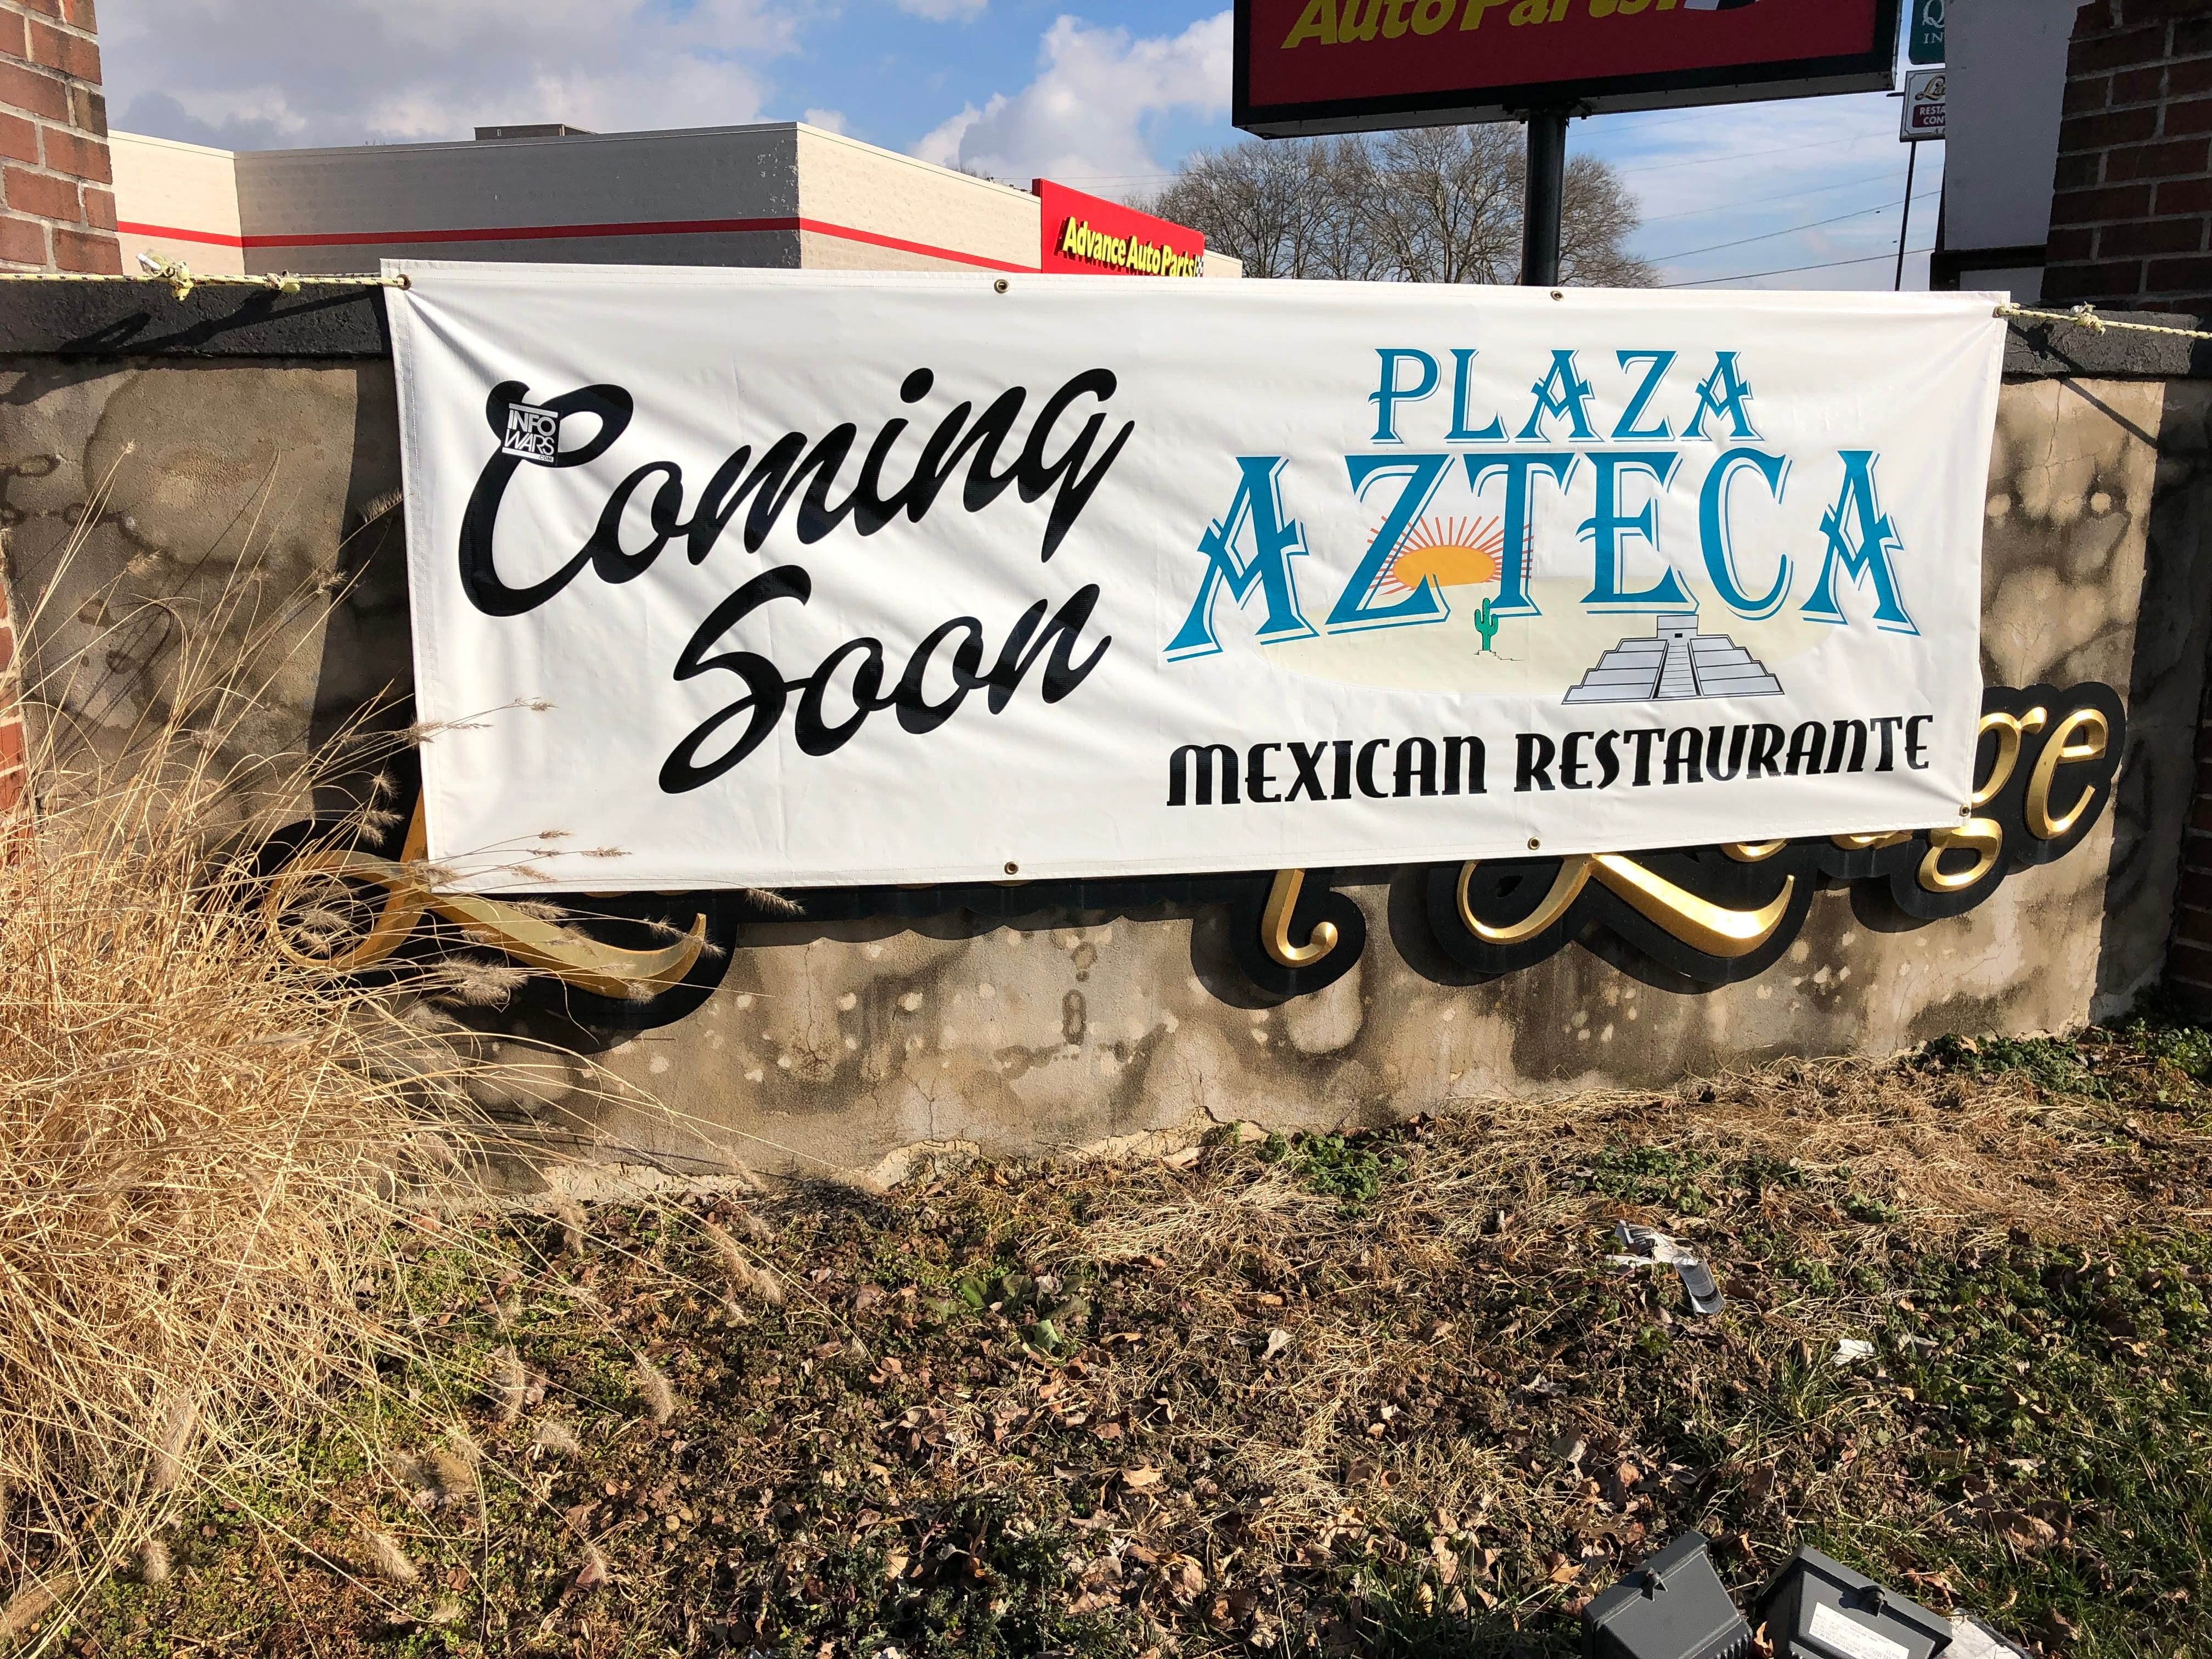 The latest location for the popular Mexican restaurant chain Plaza Azteca is due to open in Myerstown in a matter of weeks, per management. Renovations inside the old Lantern Lodge Bar & Lounge are already complete. I'm told all we're waiting for at this point is the liquor license transfer to go through.